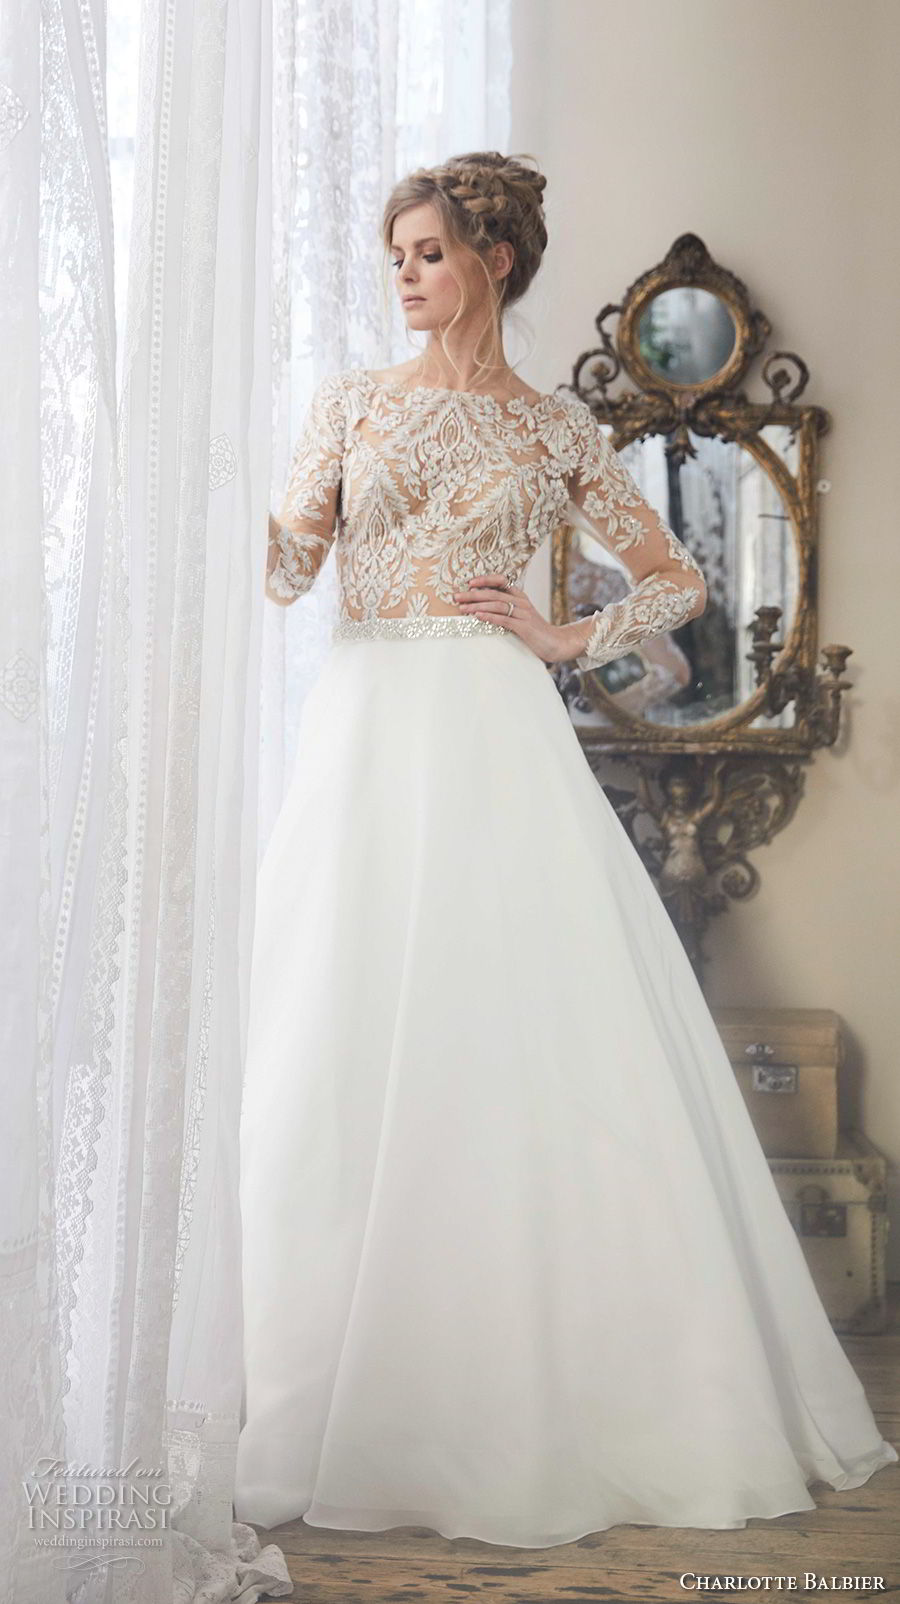 Charlotte balbier wedding dresses prices flower girl dresses for Wedding dress stores charlotte nc